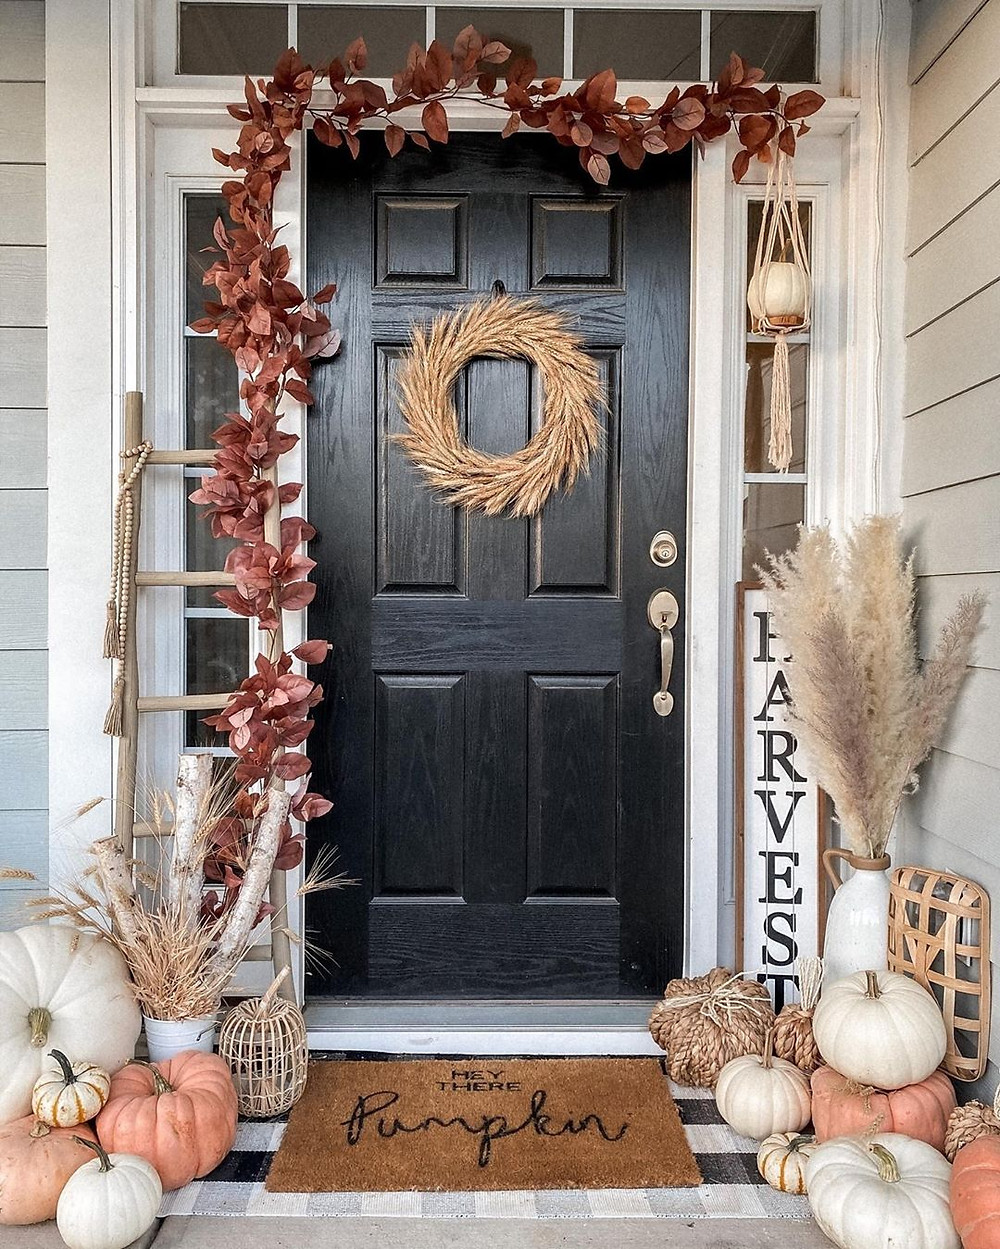 black front door entryway decor with wreath, pampas, pumpkins decorated for autumn